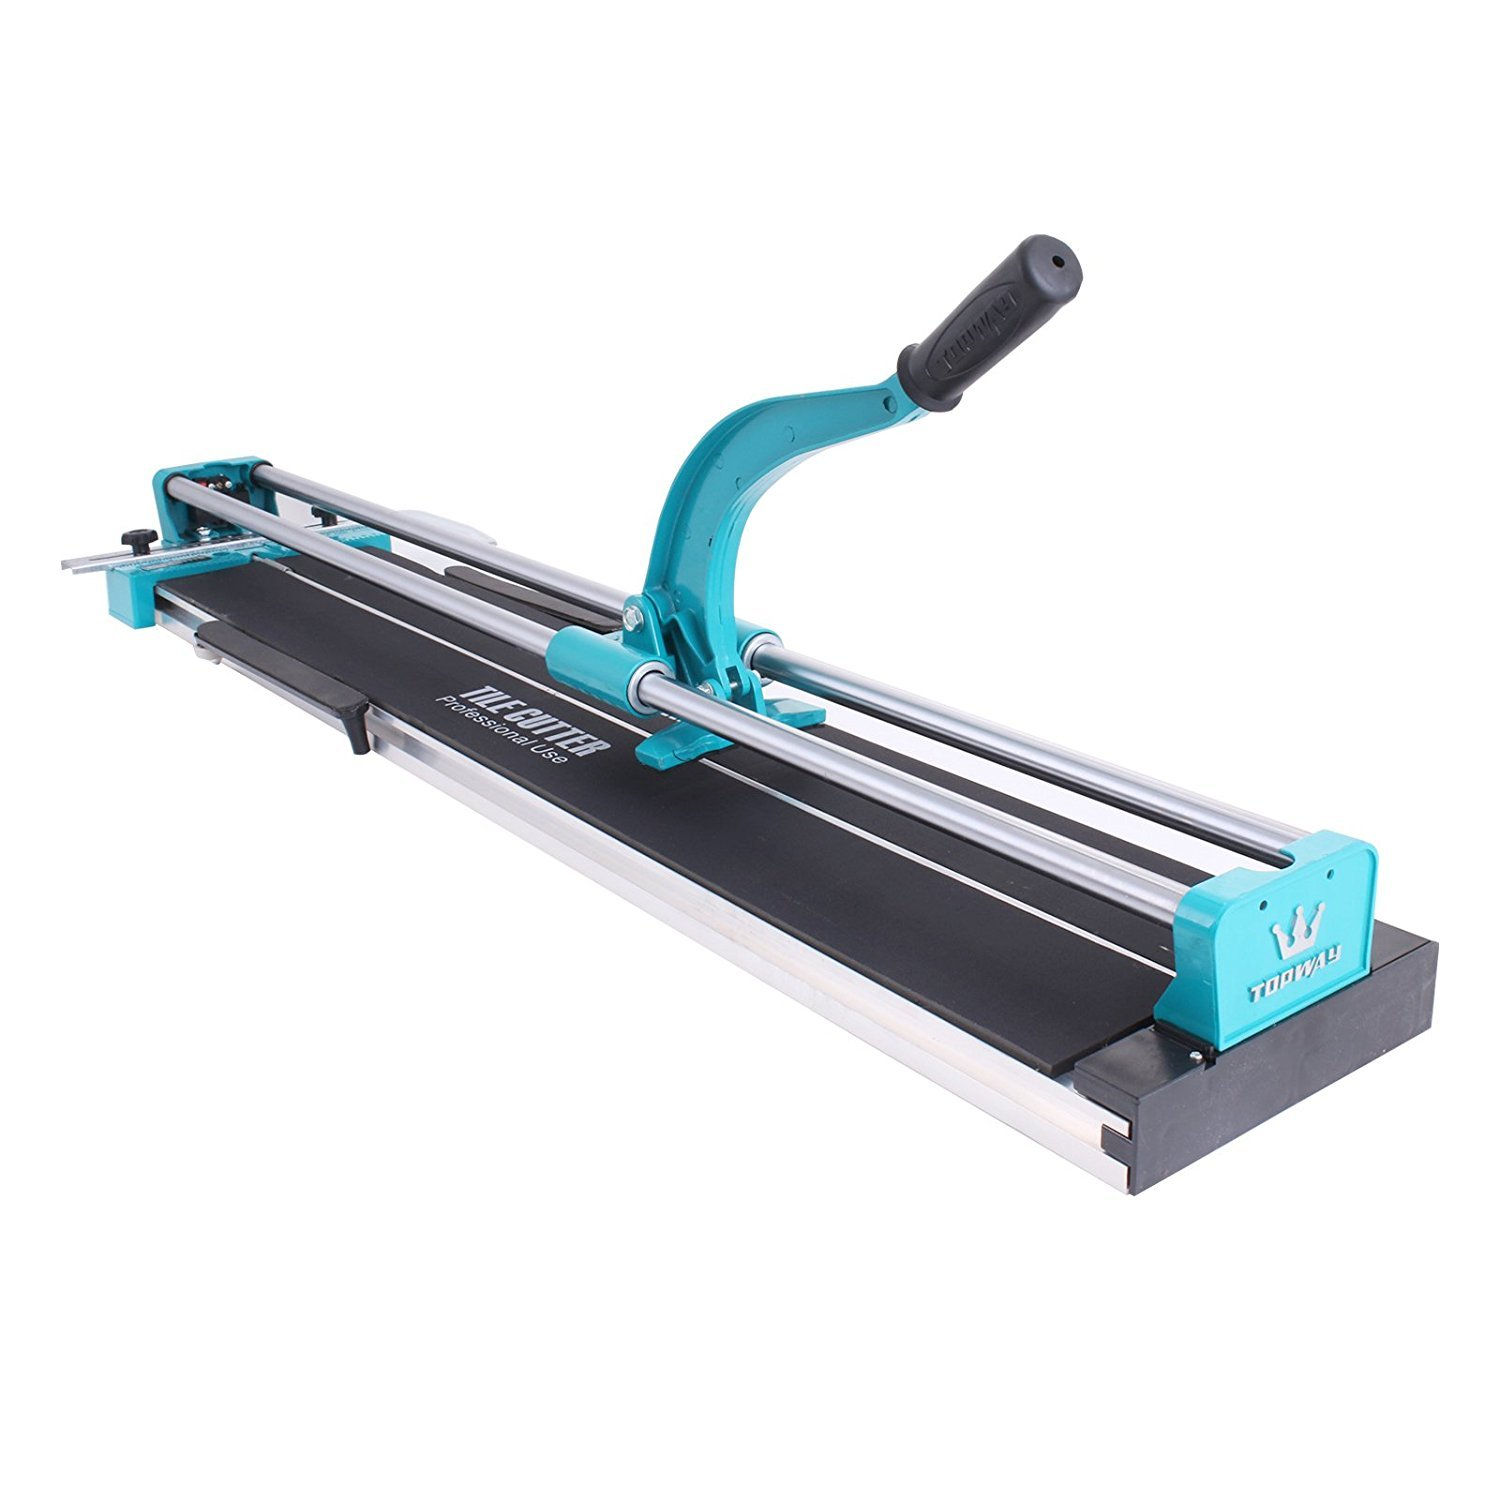 TOTOOL 40 Inch Manual Tile Cutter Professional Ceramic Tile Cutter with Solid Steel Rail and Adjustable Laser Guide Floor Tile Cutter for Porcelain and Ceramic Tiles (40 Inch) by TOTOOL (Image #2)